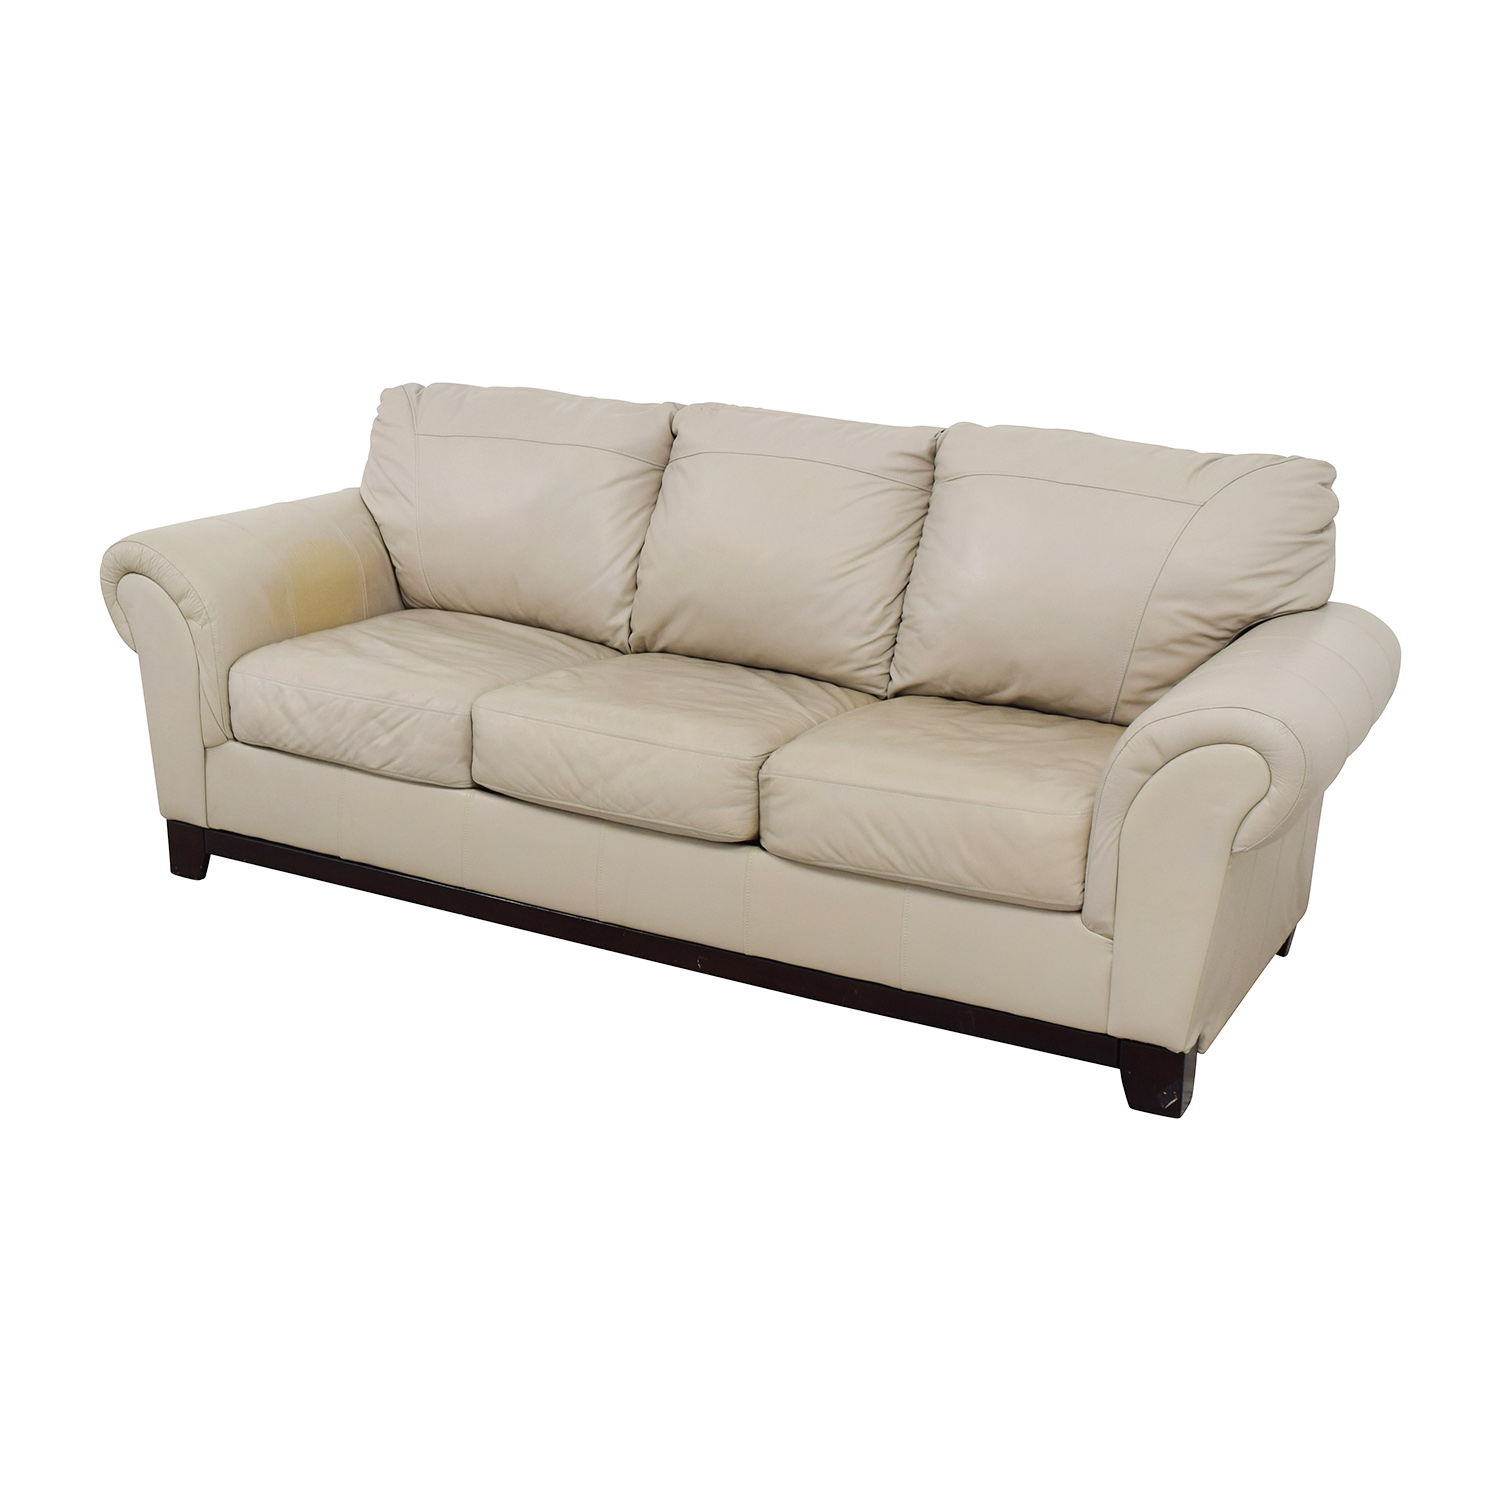 Taupe Leather Couch coupon